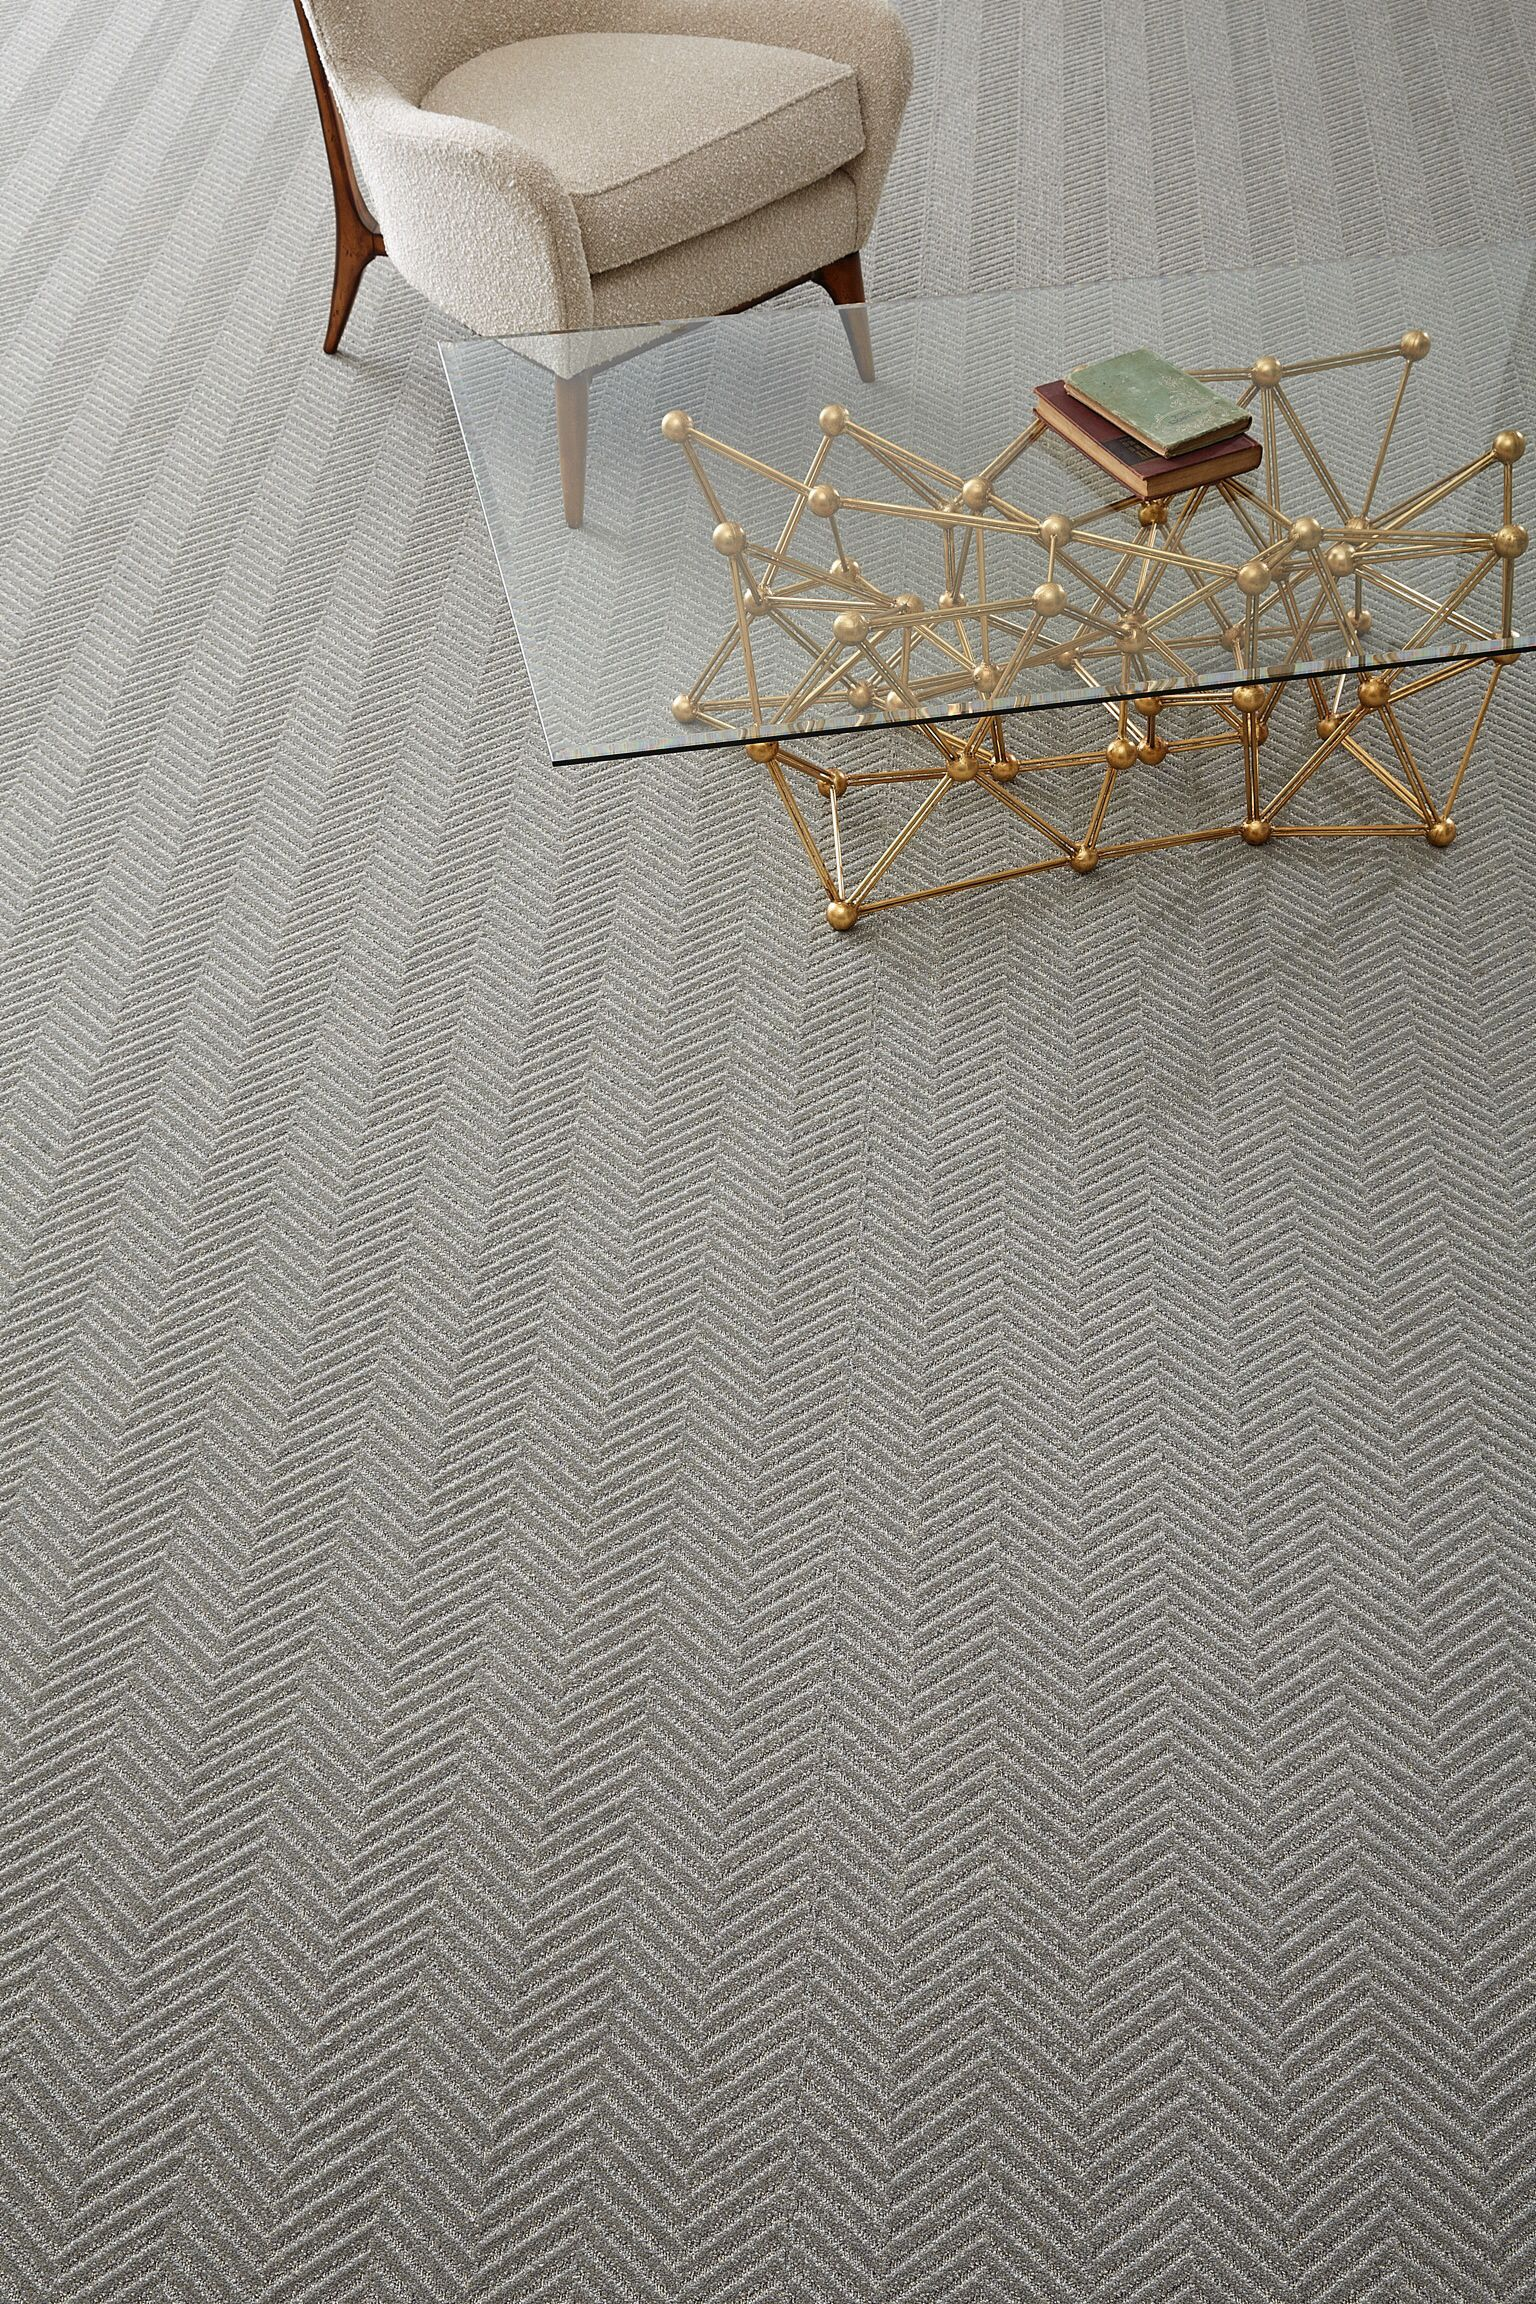 Timeless large scale herringbone carpet totallycarpet